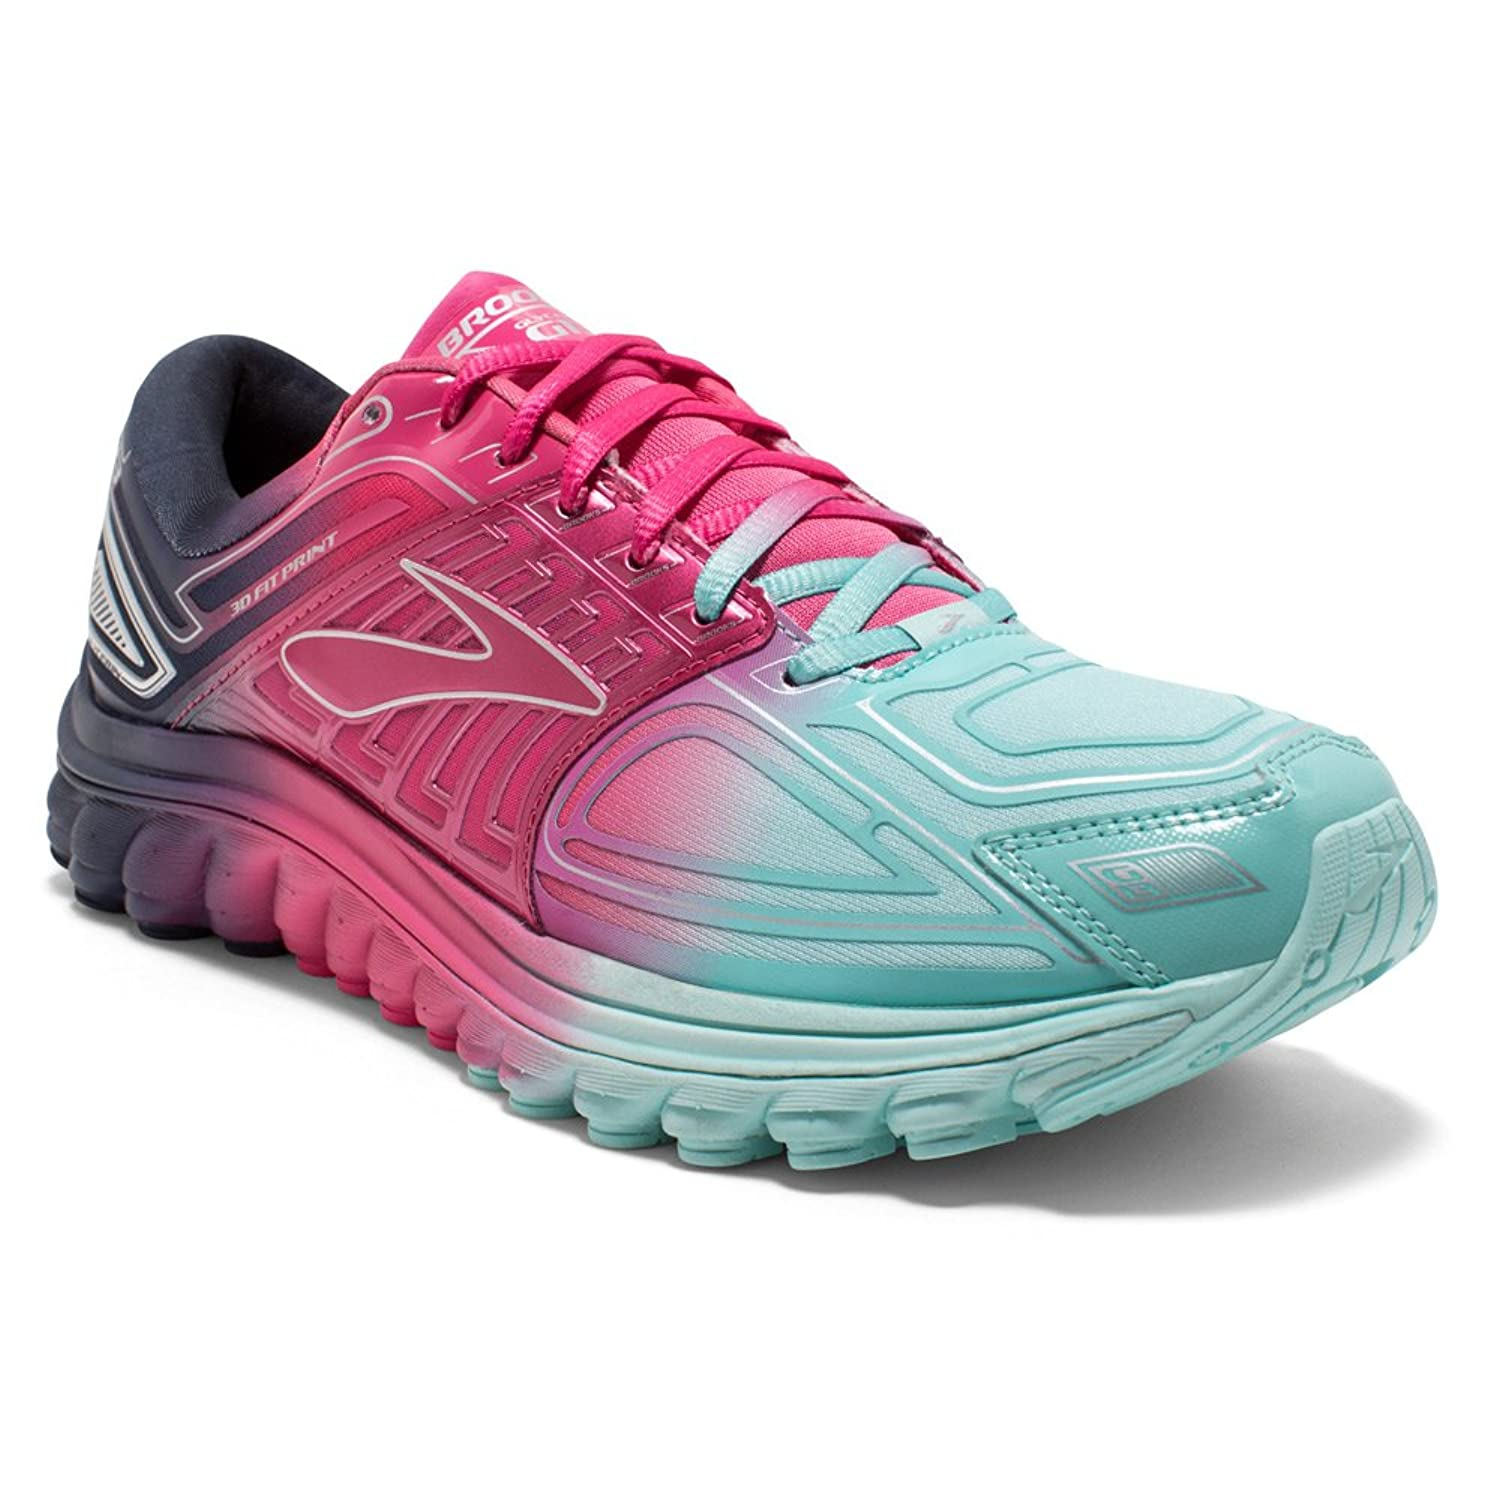 8f5fabac6c20a Brooks Glycerin 13 Women s Neutral Running Shoes Purple Pink Blue ...